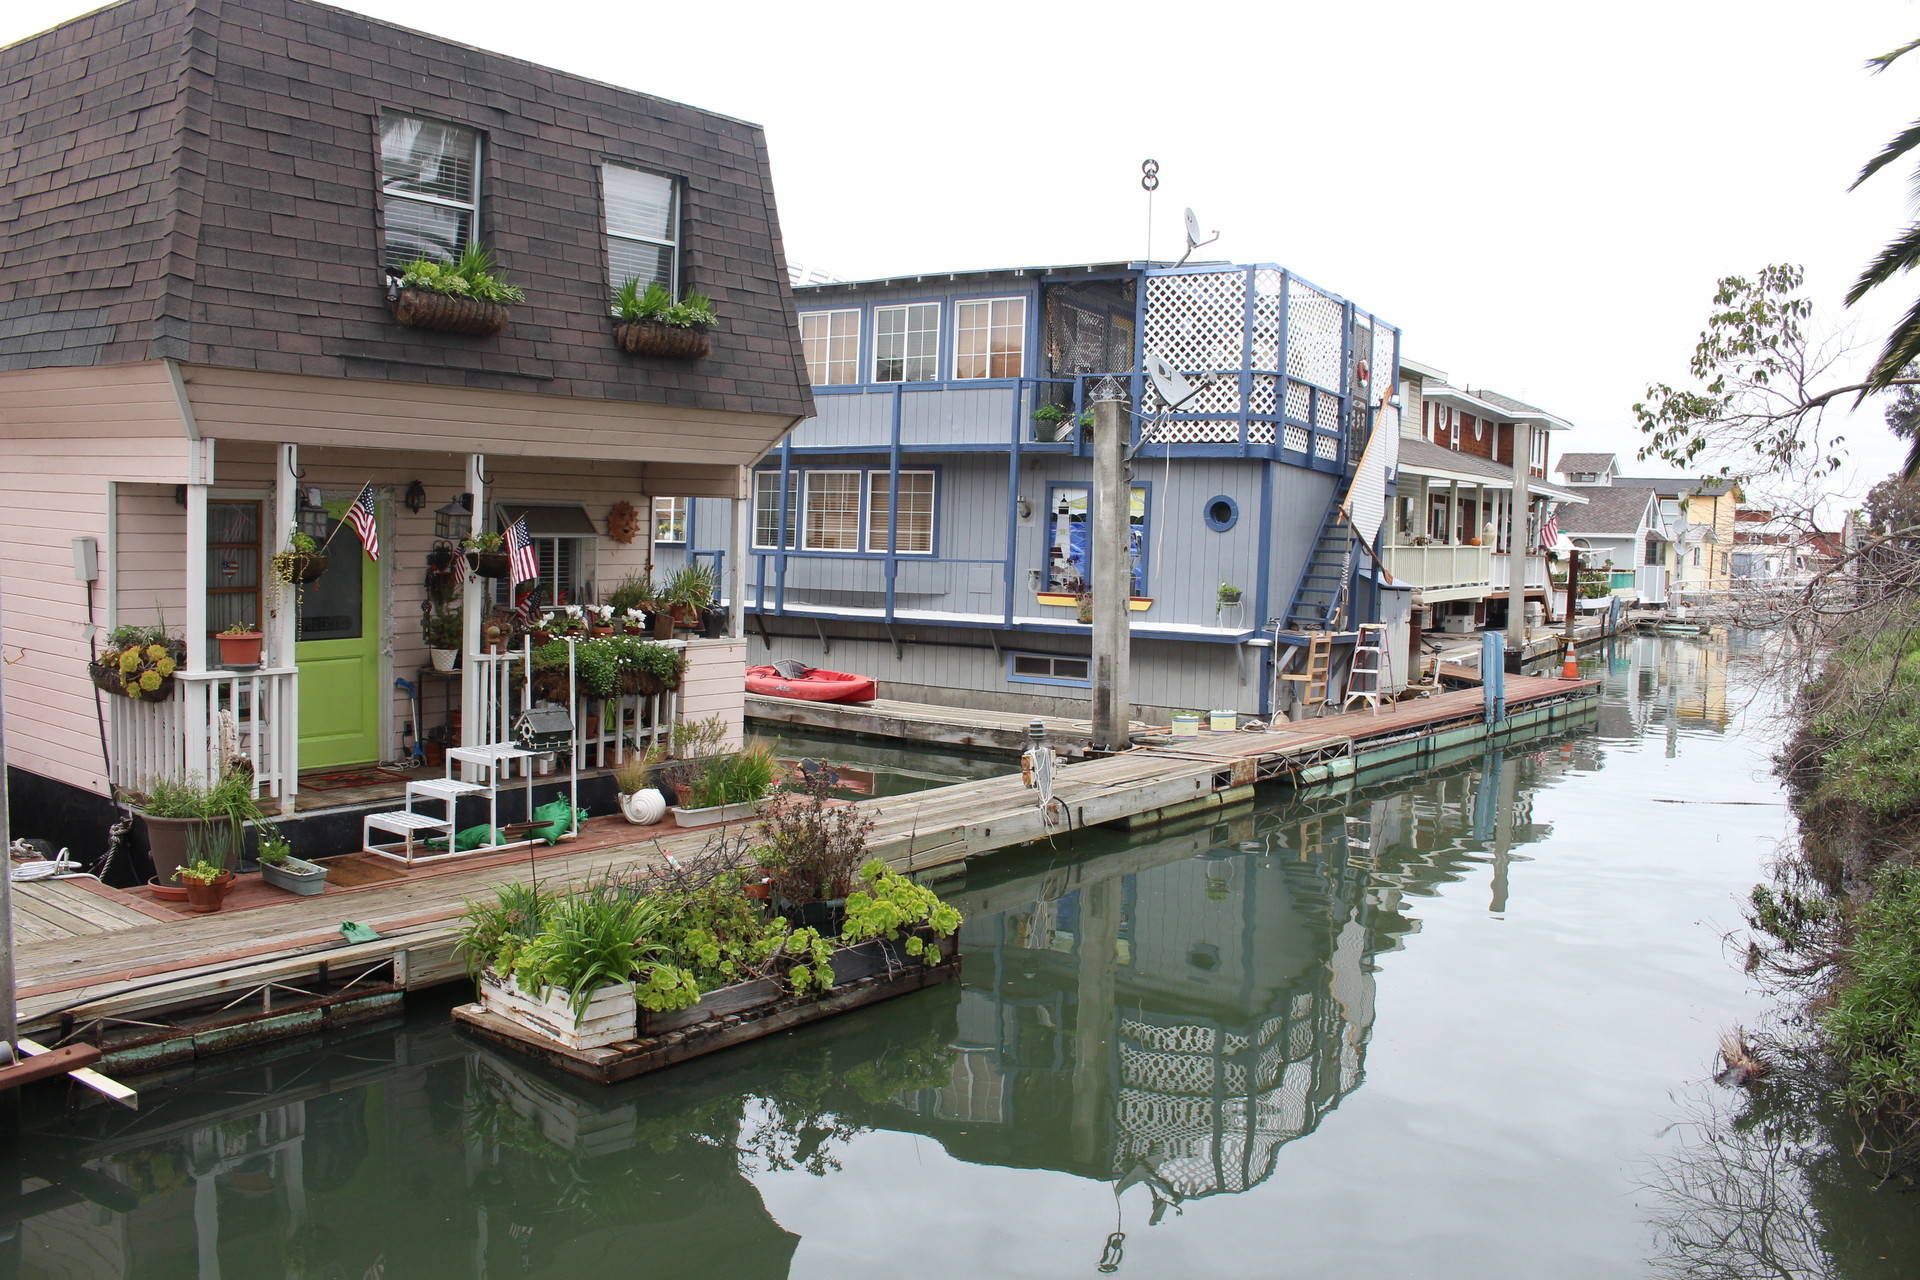 About 70 liveaboards are moored at Redwood City's Docktown Marina --  floating buildings or boats adapted for residential uses. The city is looking to potentially relocate residents. Farida Jhabvala Romero / KQED